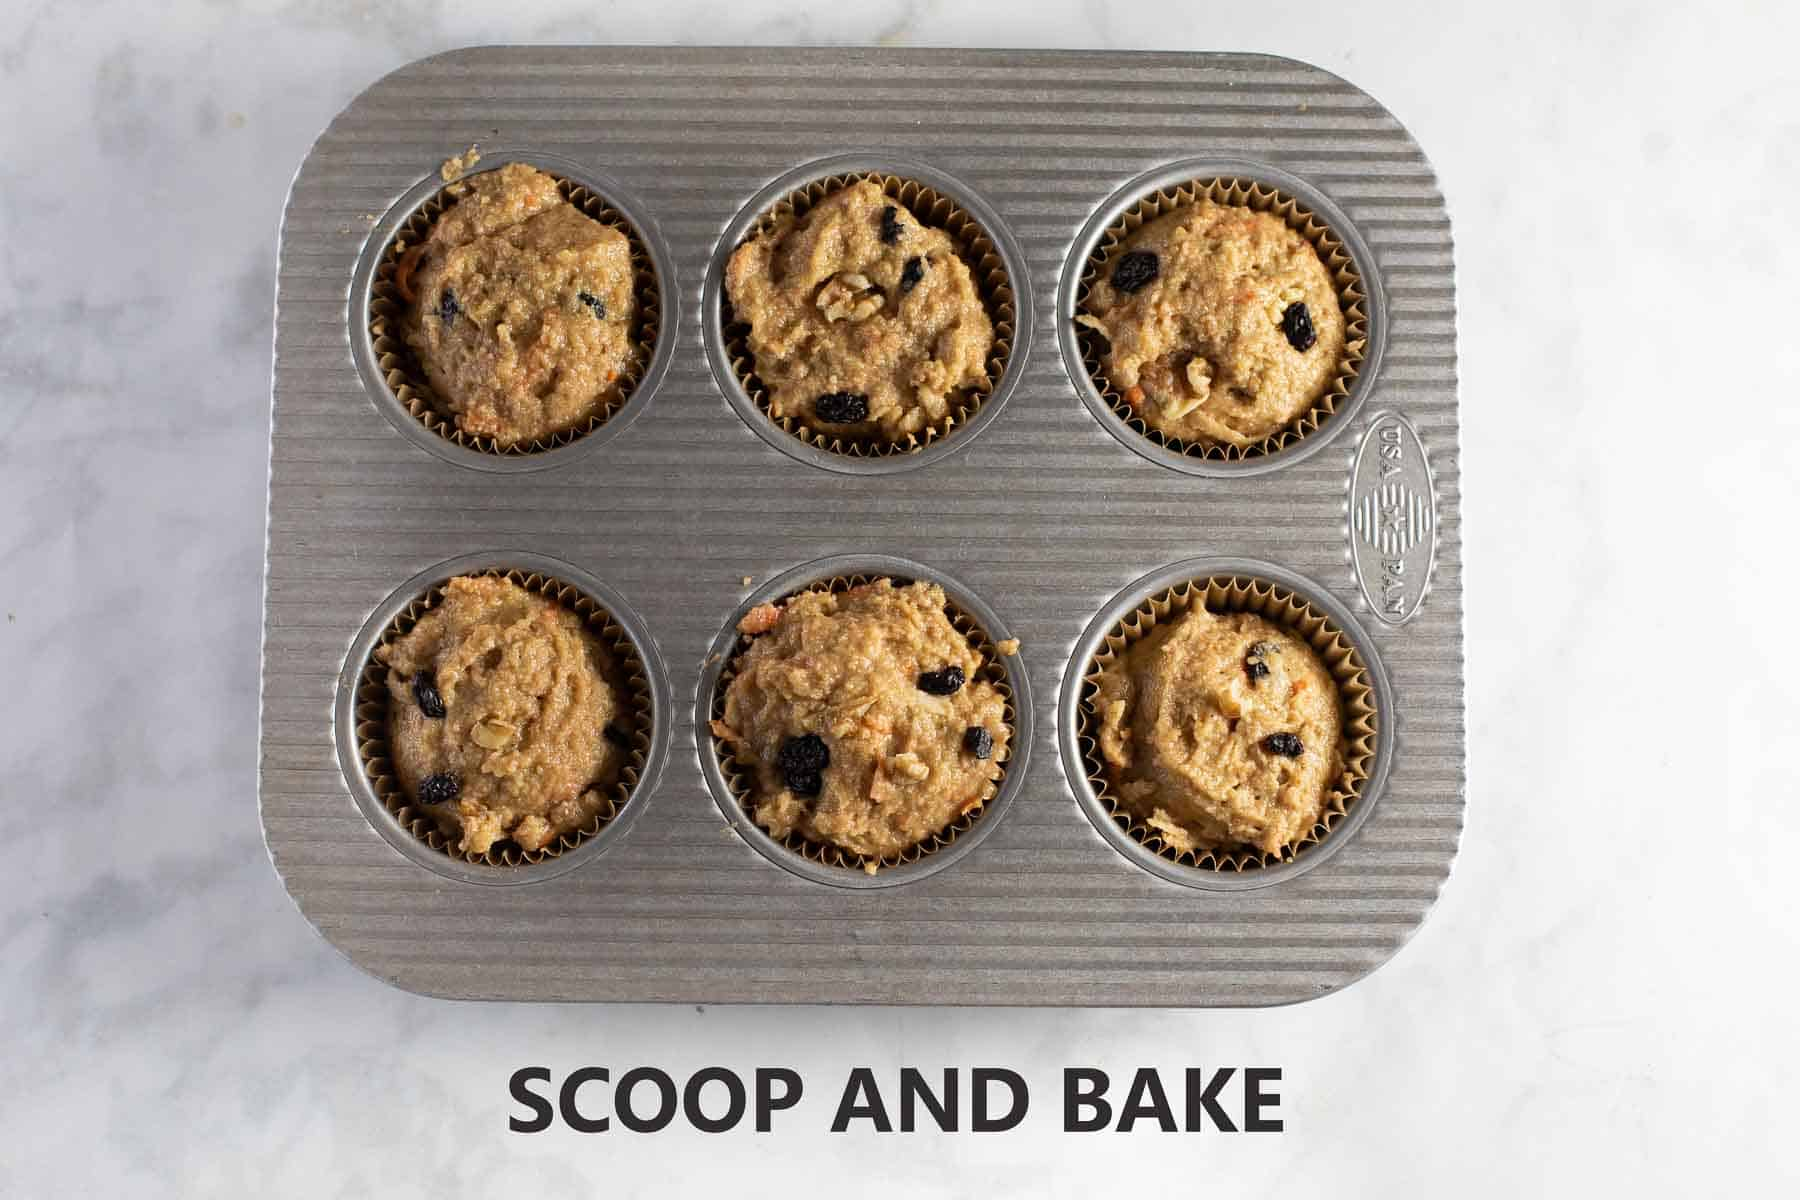 muffins scooped into baking pan